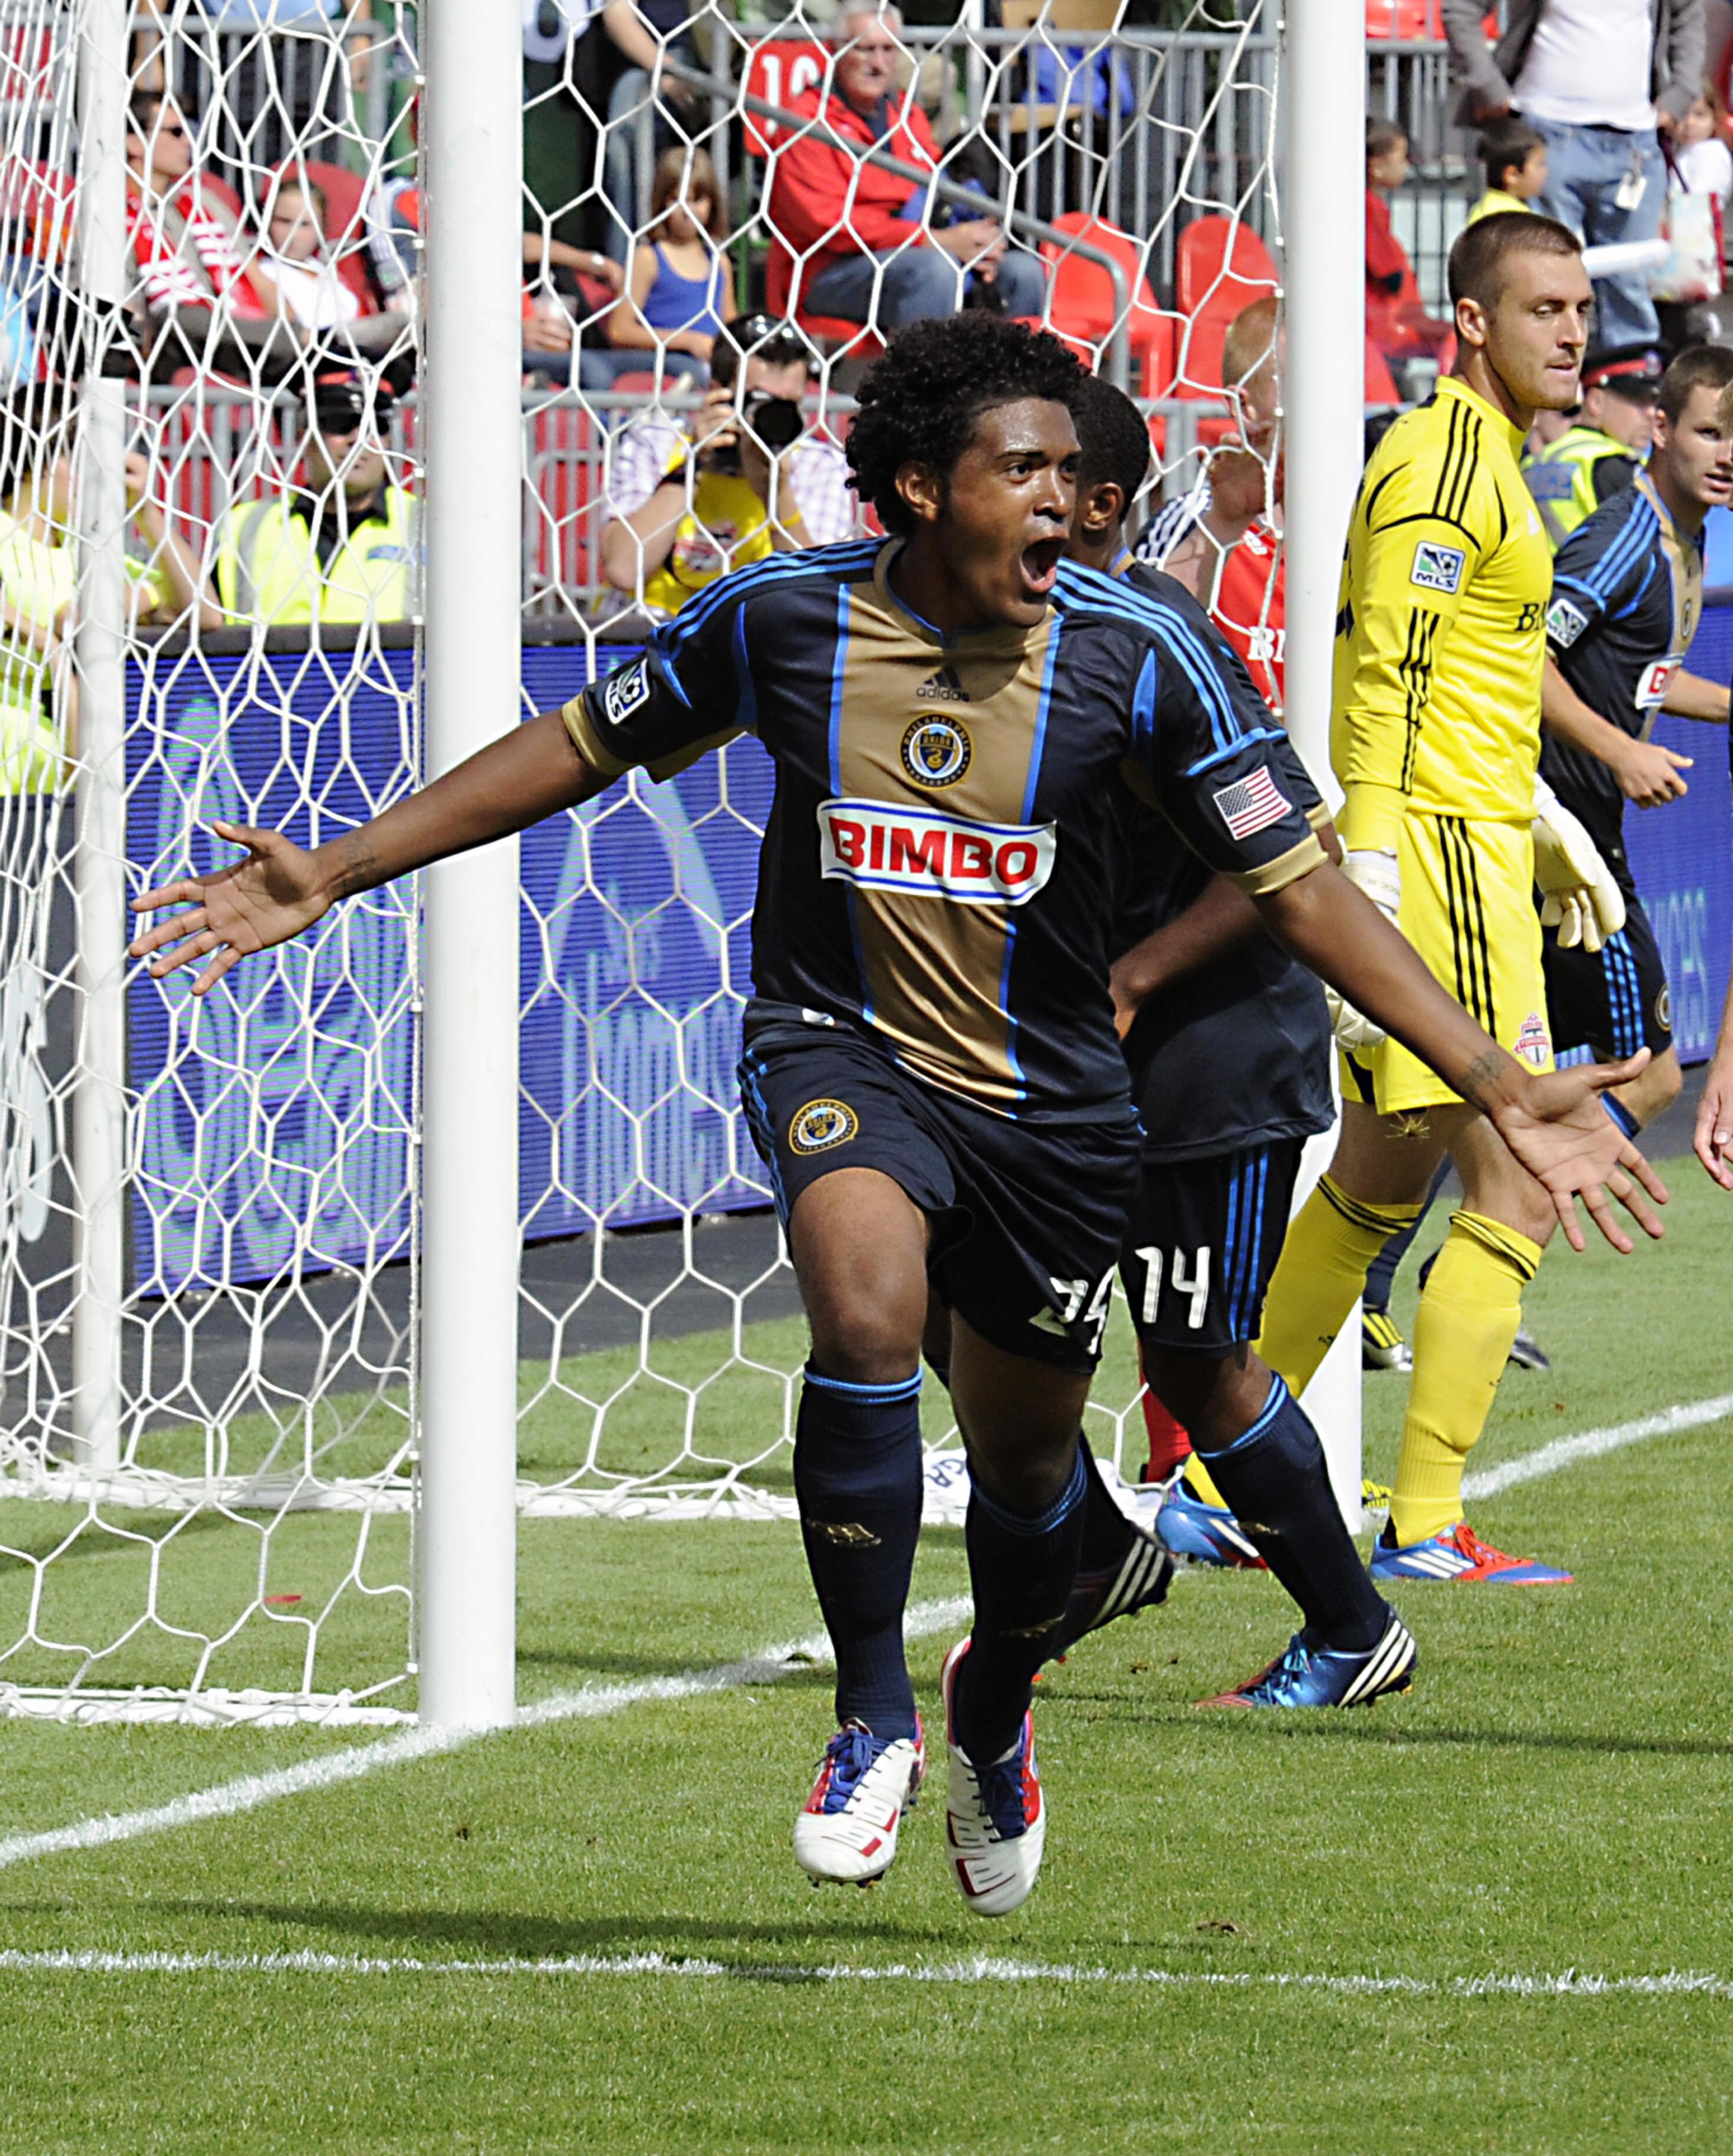 TORONTO, CANADA - SEPTEMBER 15: Sheanon Williams #25 of the Philadelphia Union celebrates his goal against Toronto FC during MLS action at the BMO Field September 15, 2012 in Toronto, Ontario, Canada.  (Photo by Abelimages/Getty Images)